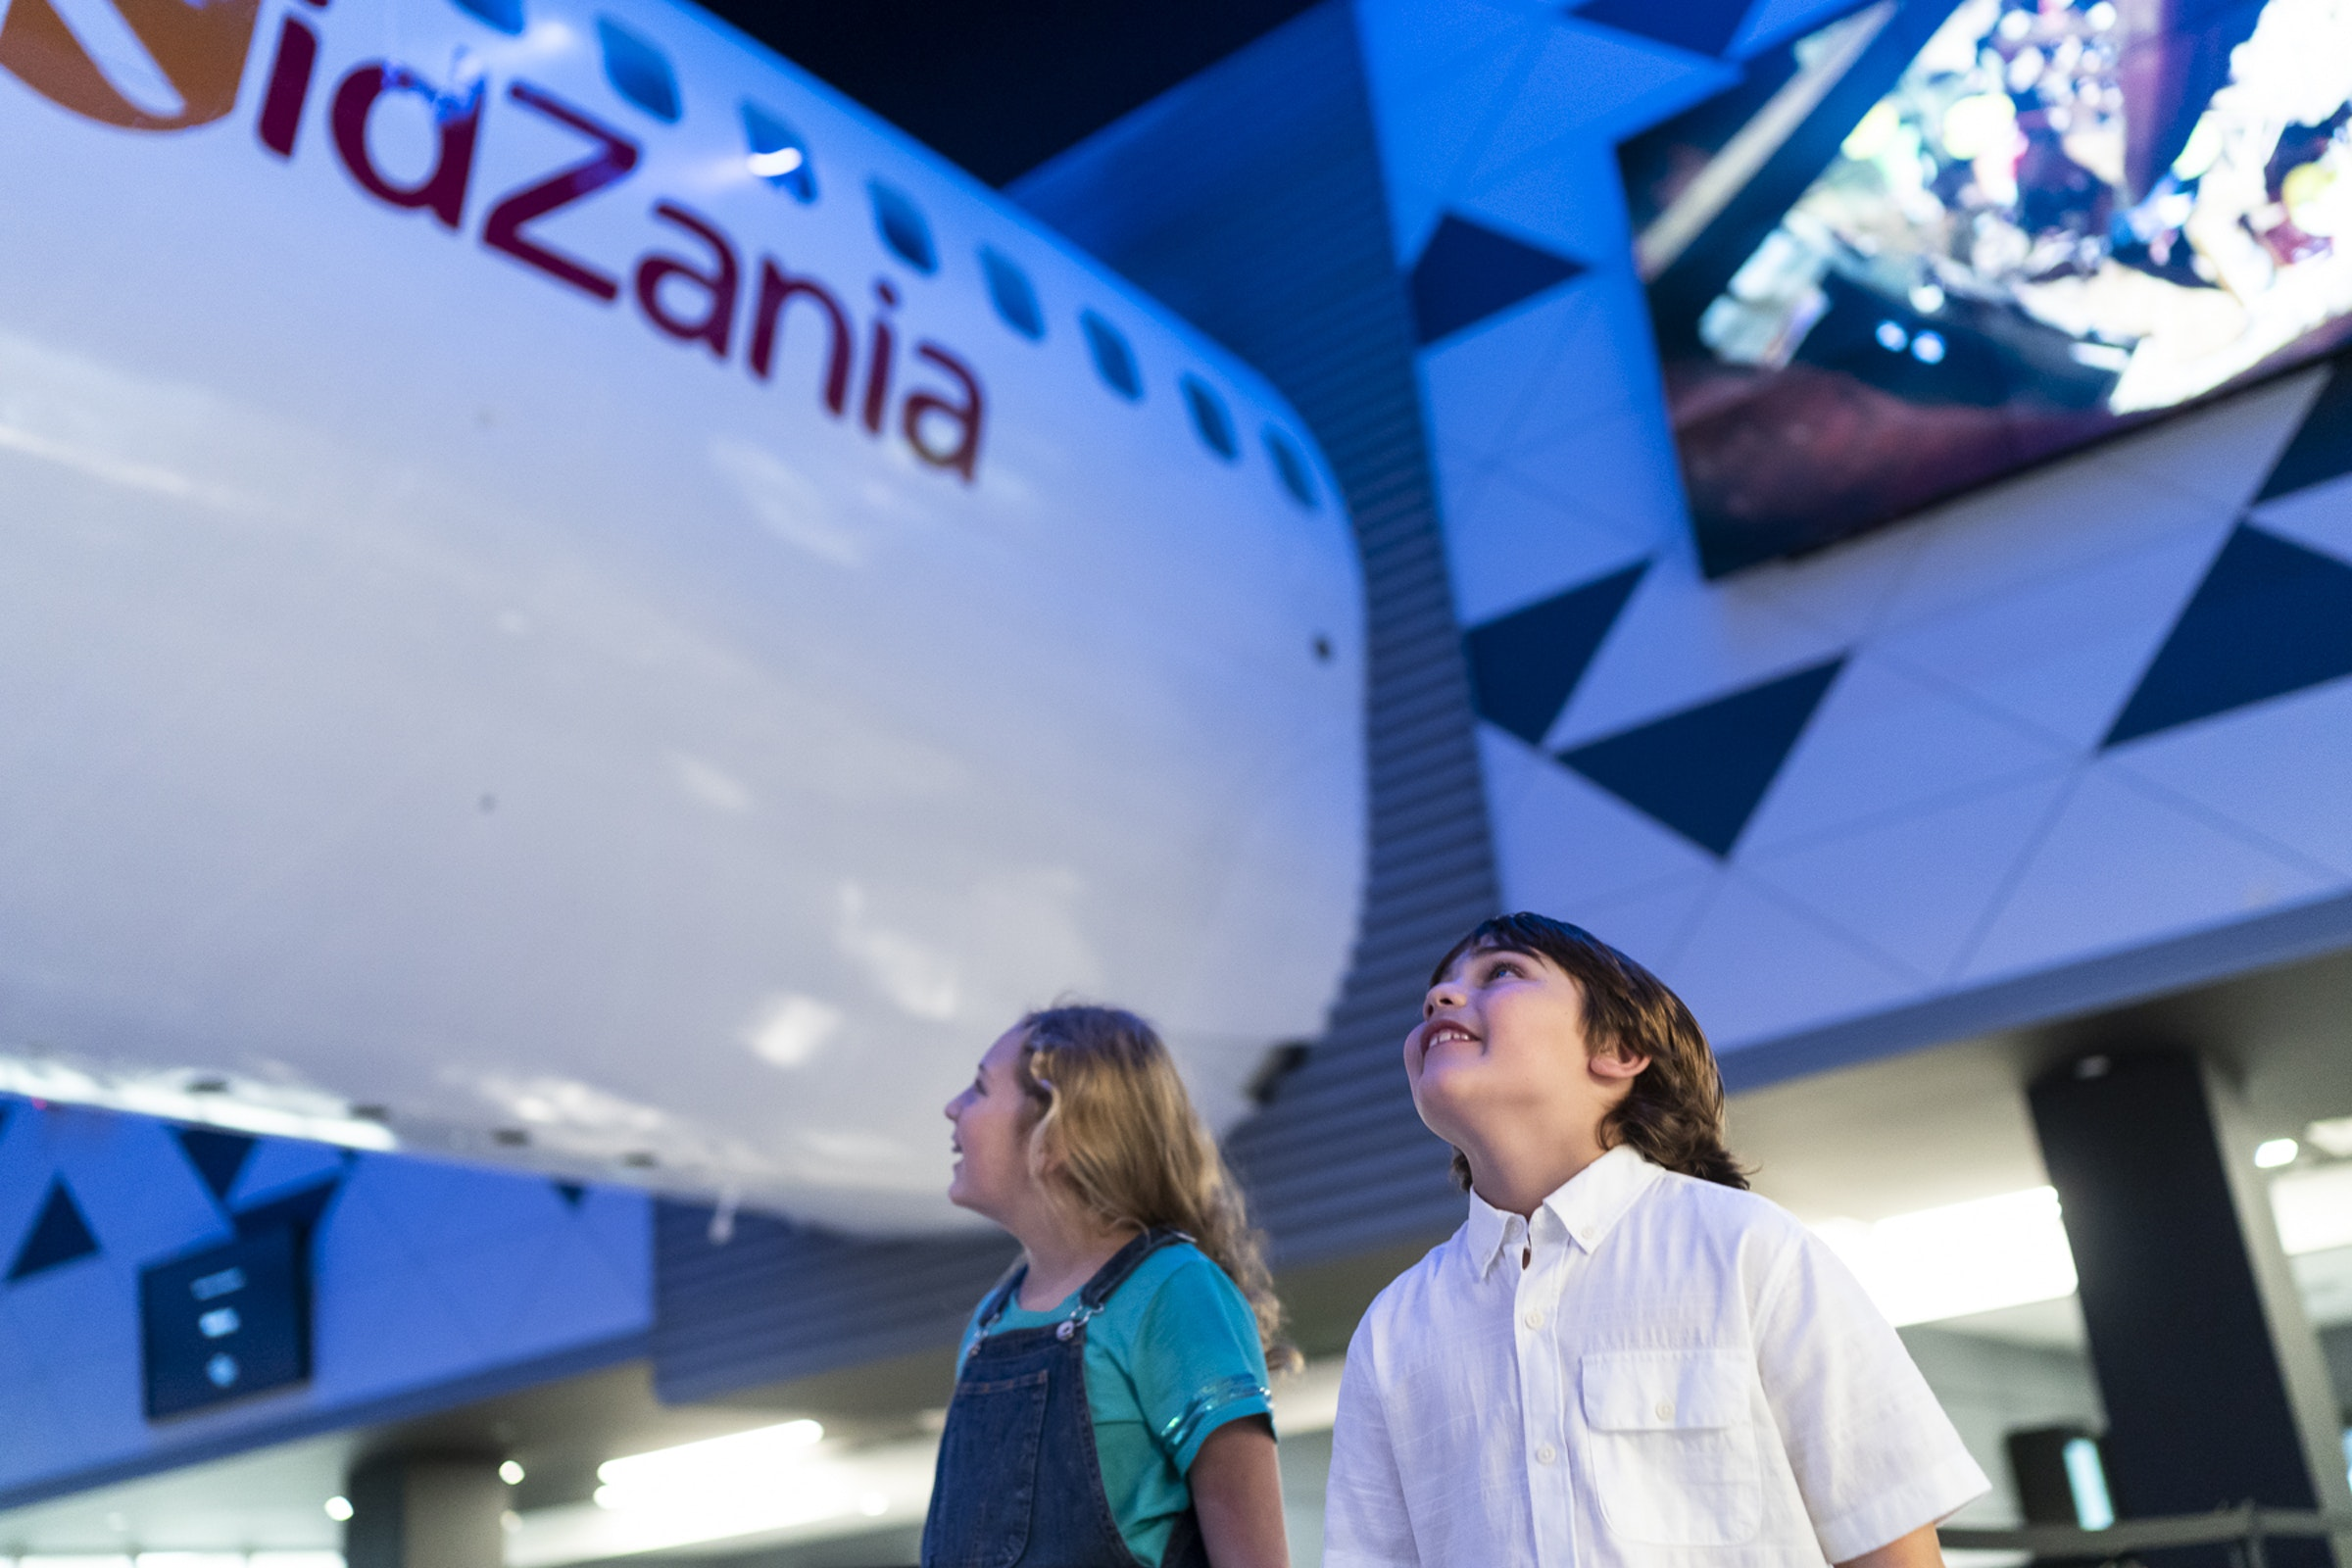 KidZania in Beyond Dallas